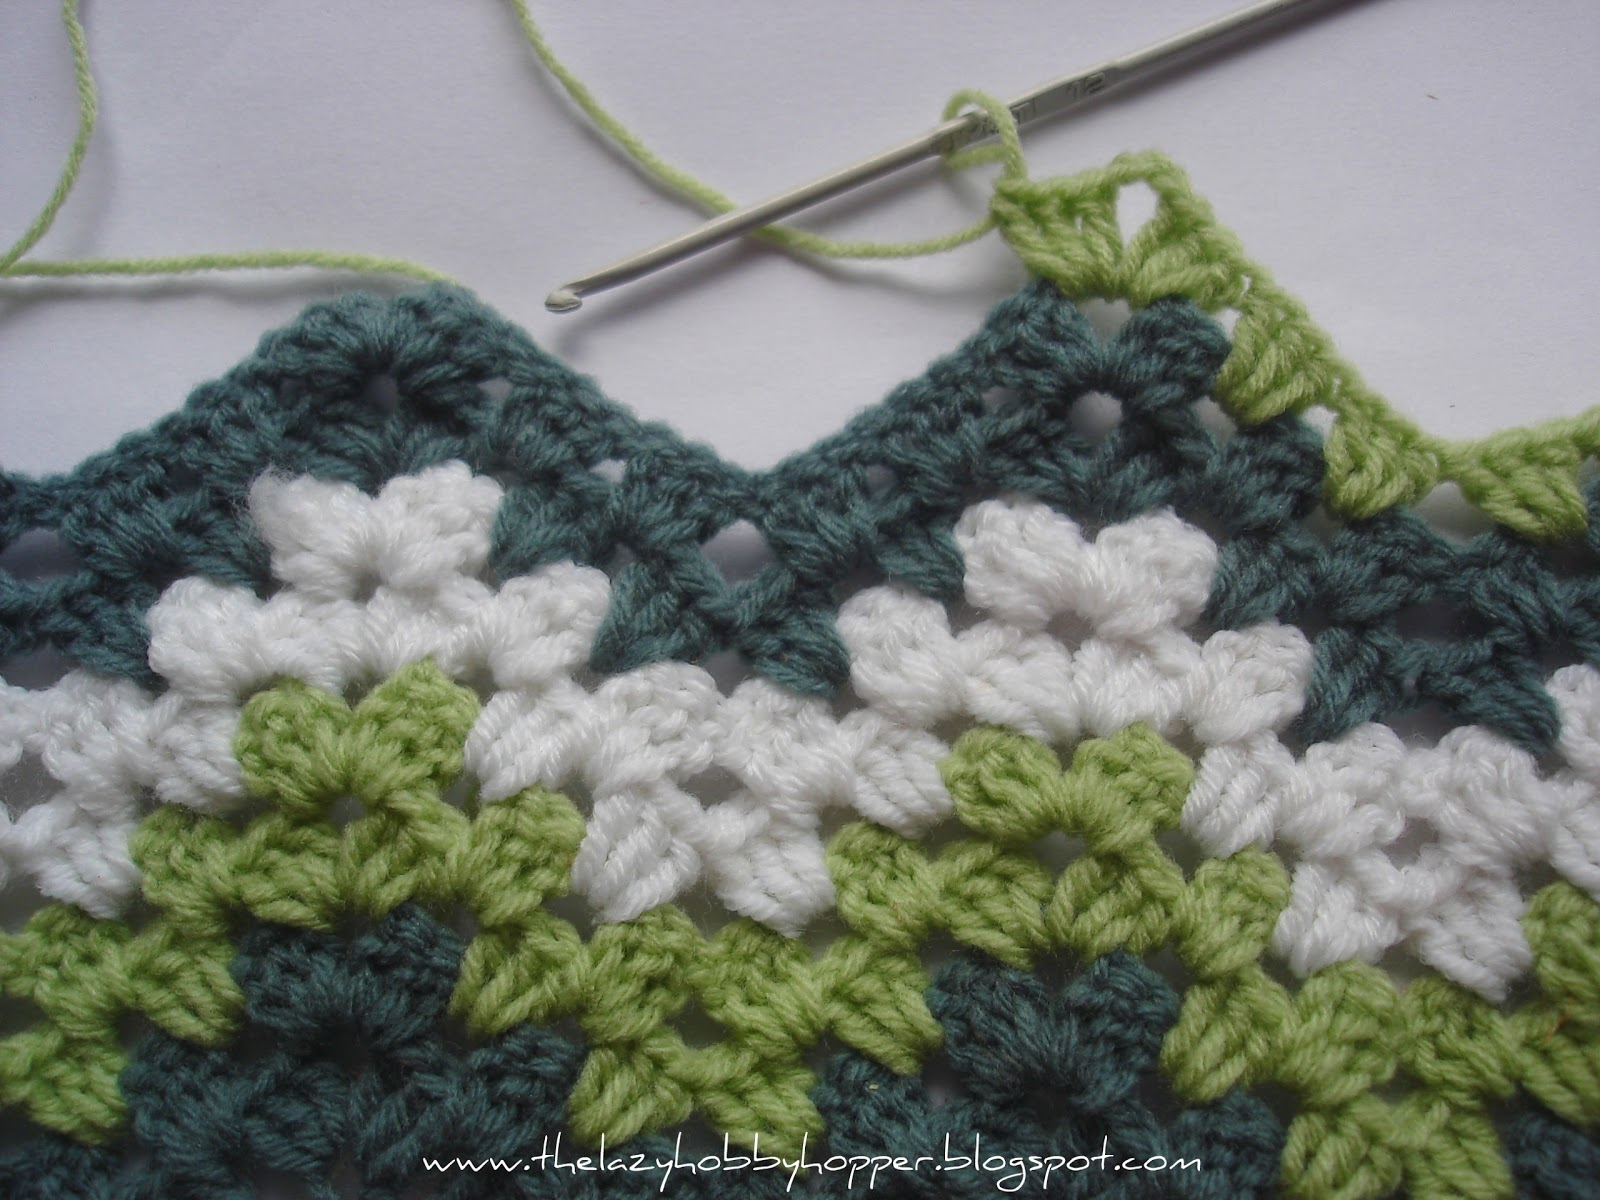 Crochet Granny Stitch : ... many of you who can crochet fairly well may not know how to crochet a